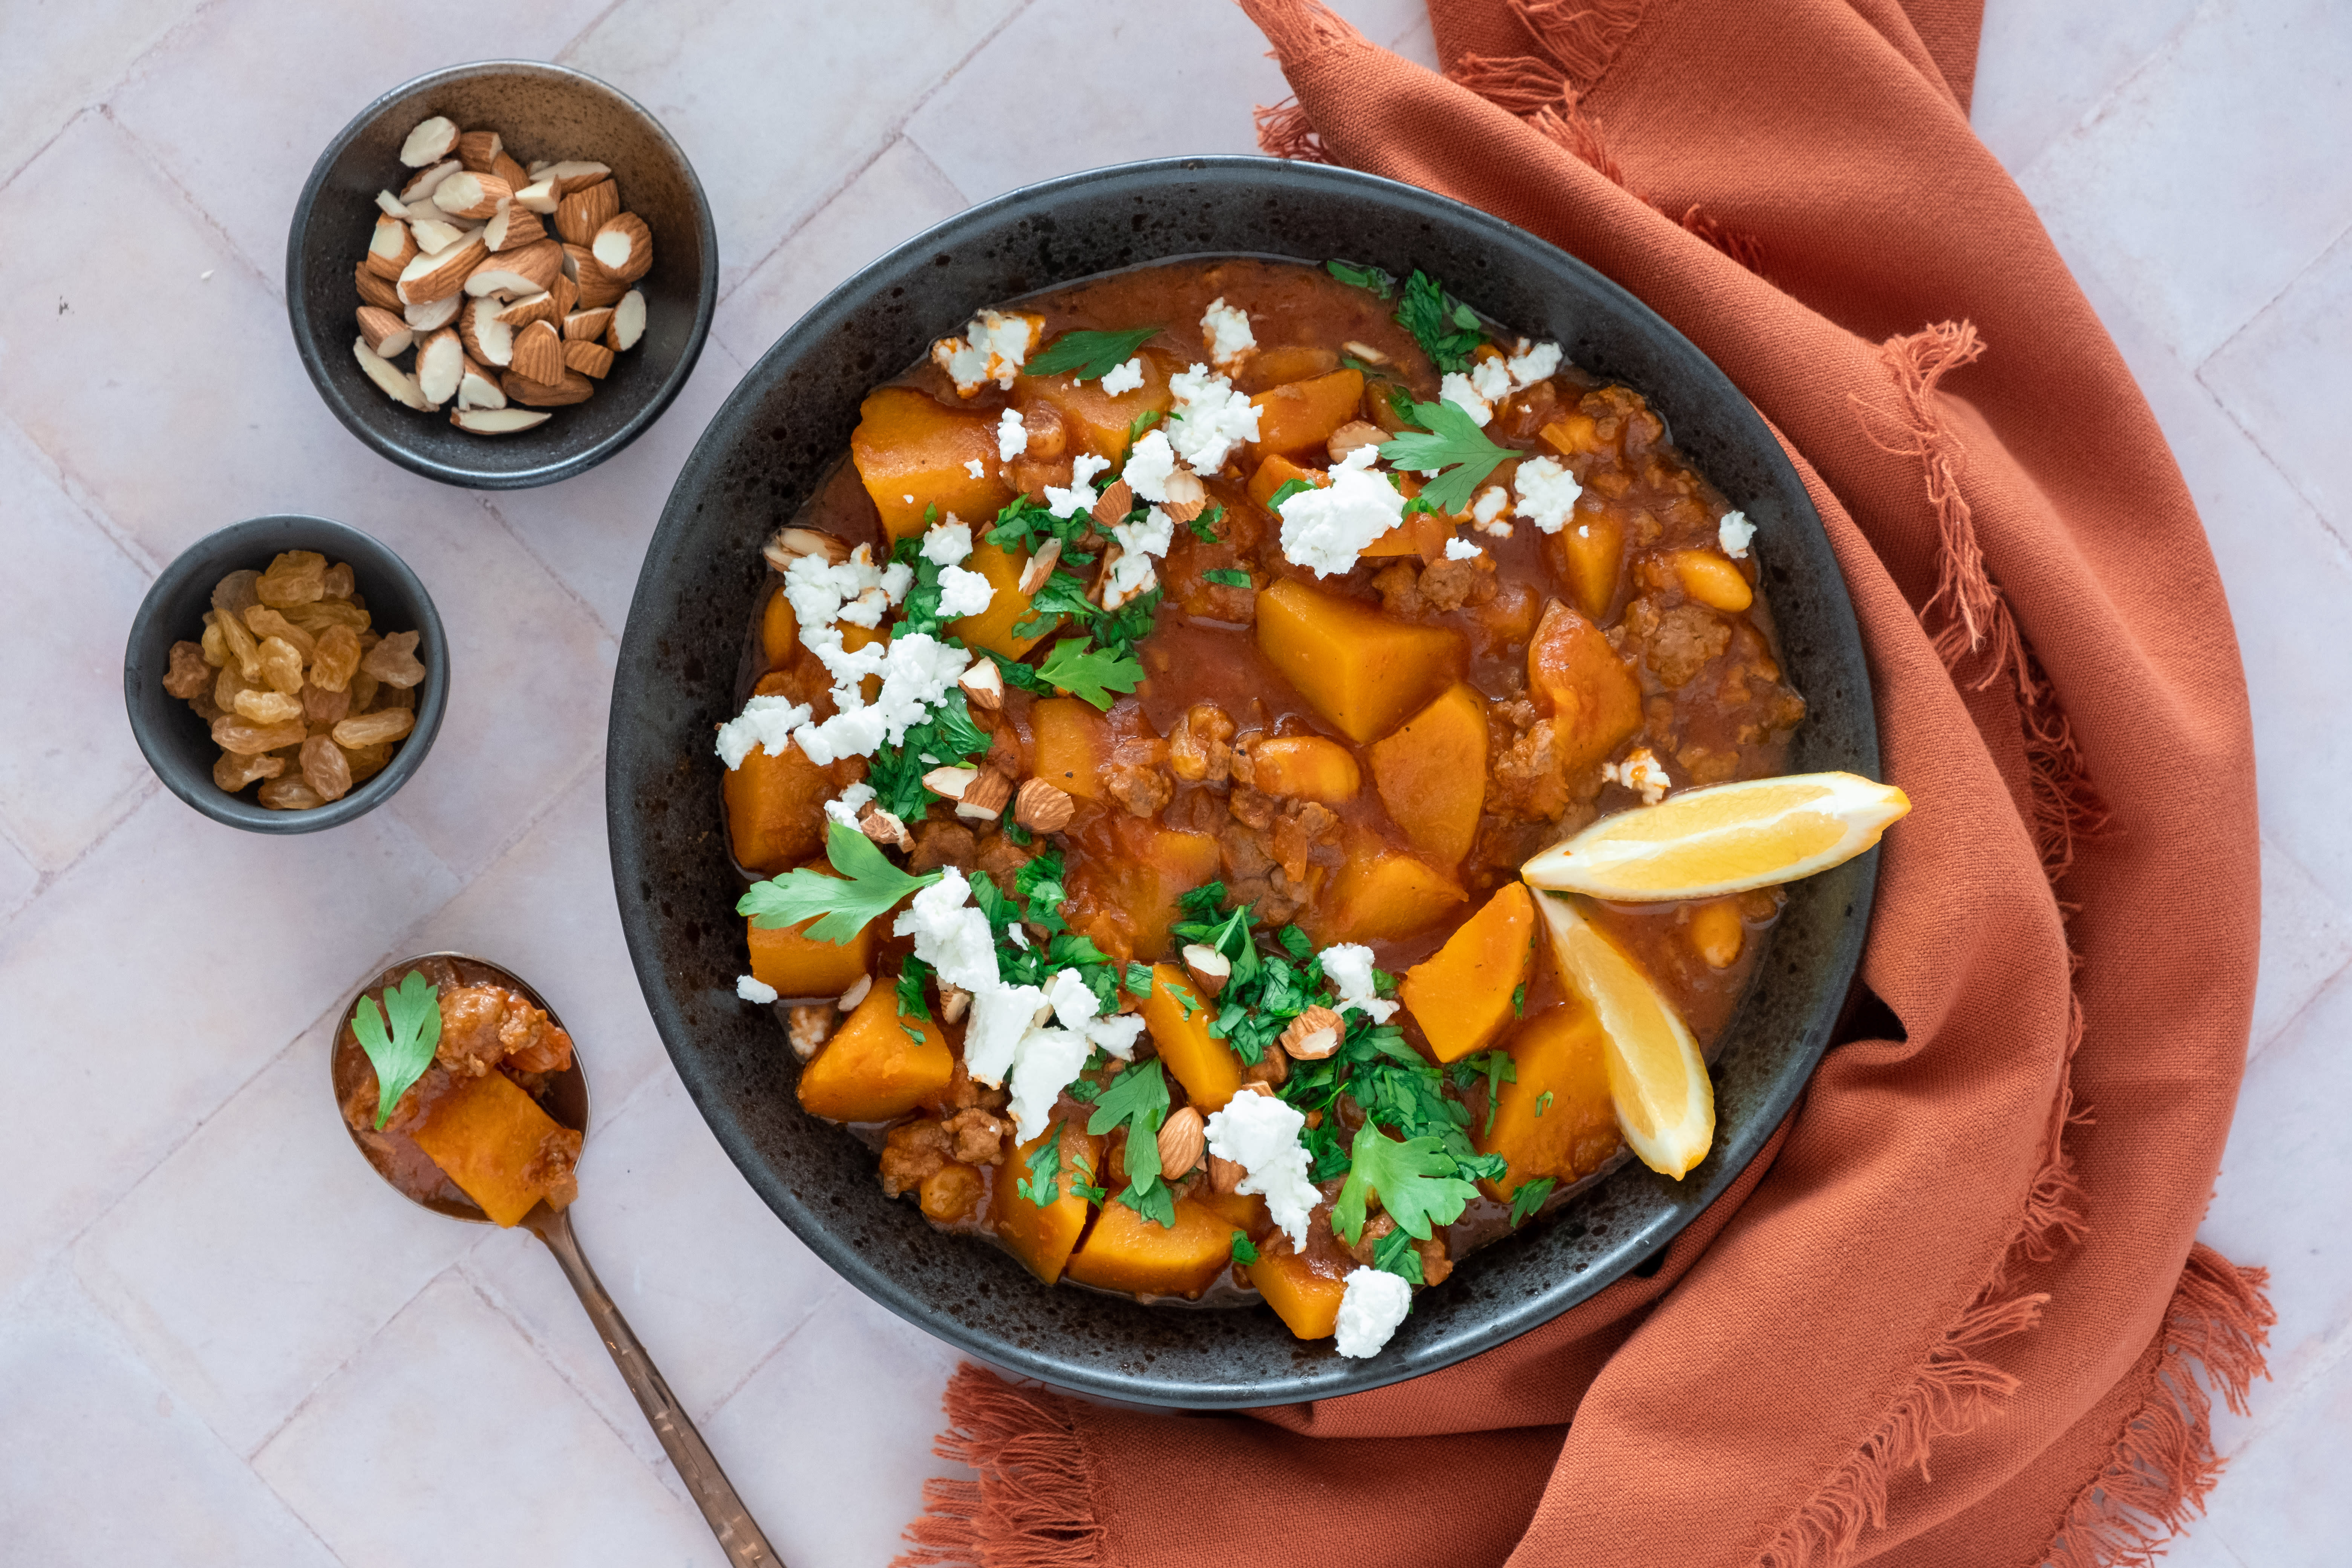 Lamb and Butternut Squash Tagine with Feta Cheese